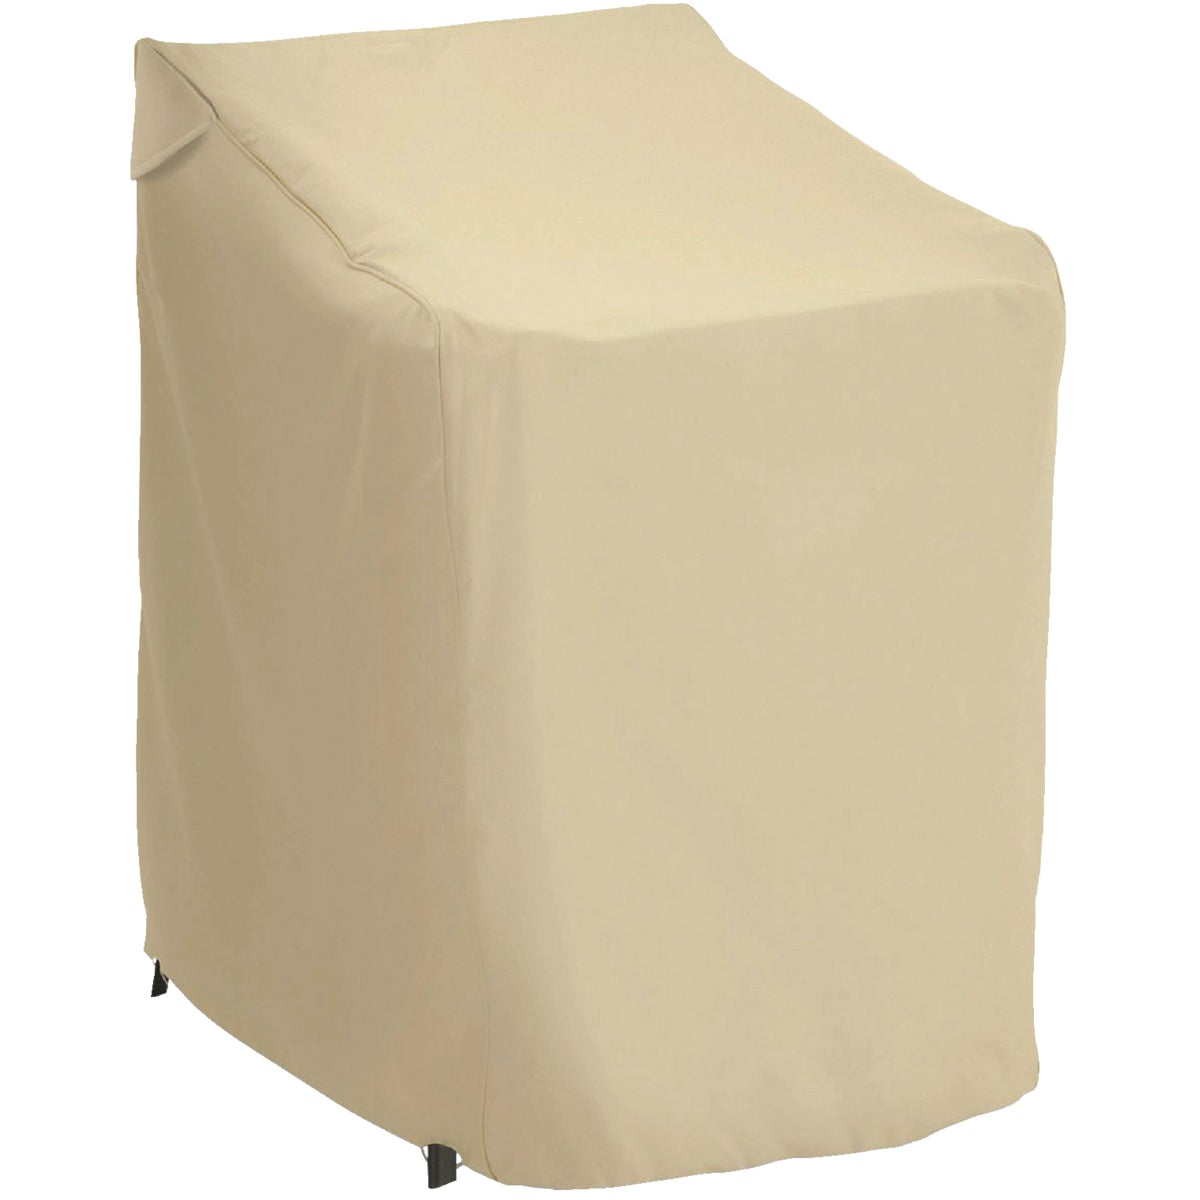 Classic Accessories TERAZO STACK CHAIR COVER 58972